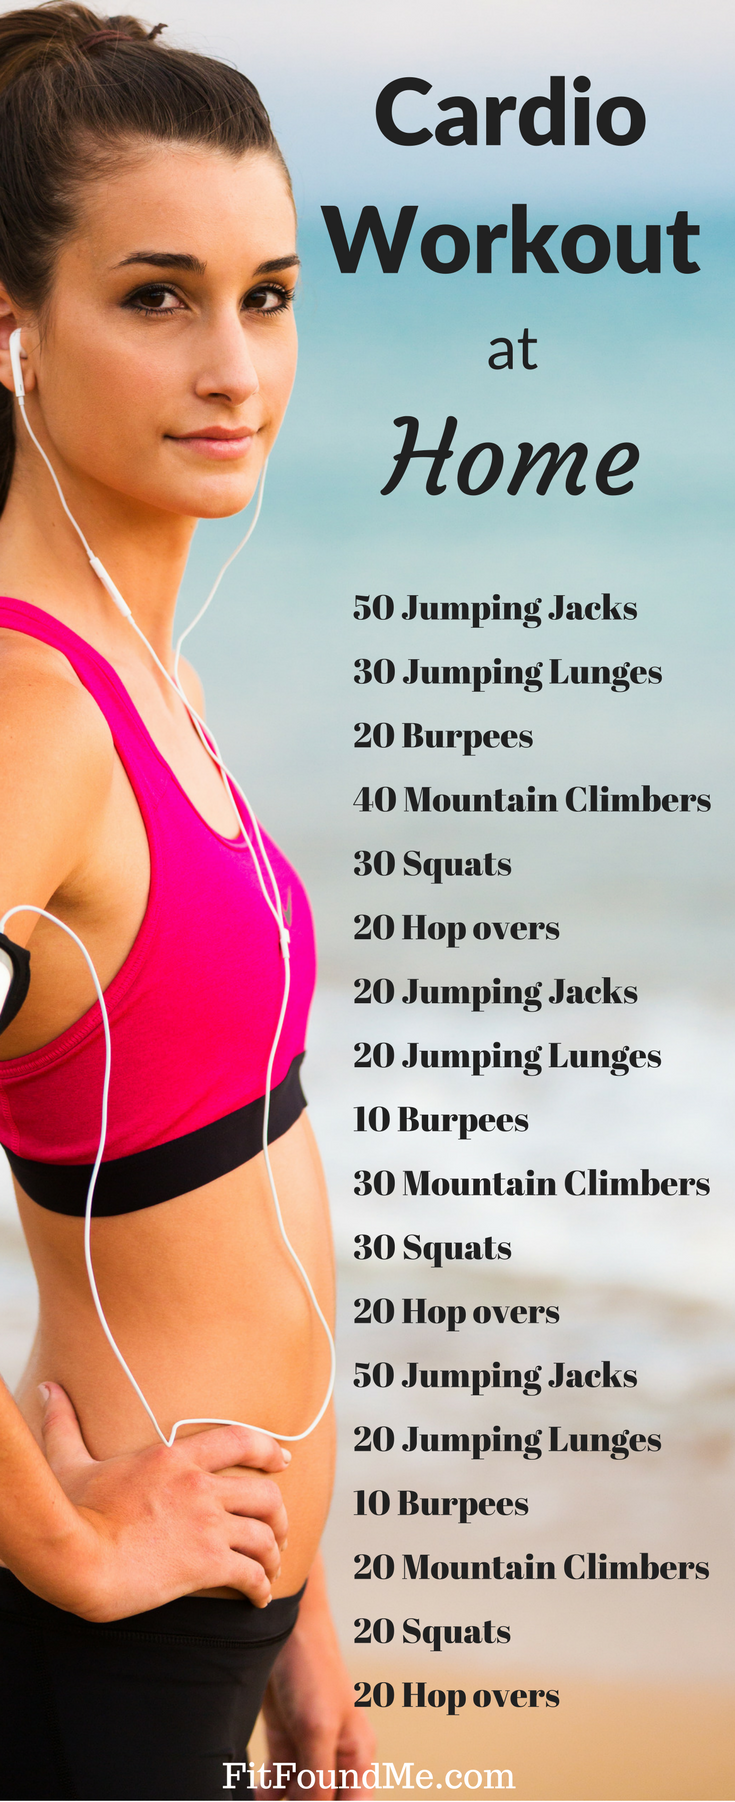 Physical Fitness Machines For 30 Minute Circuittraining Workouts